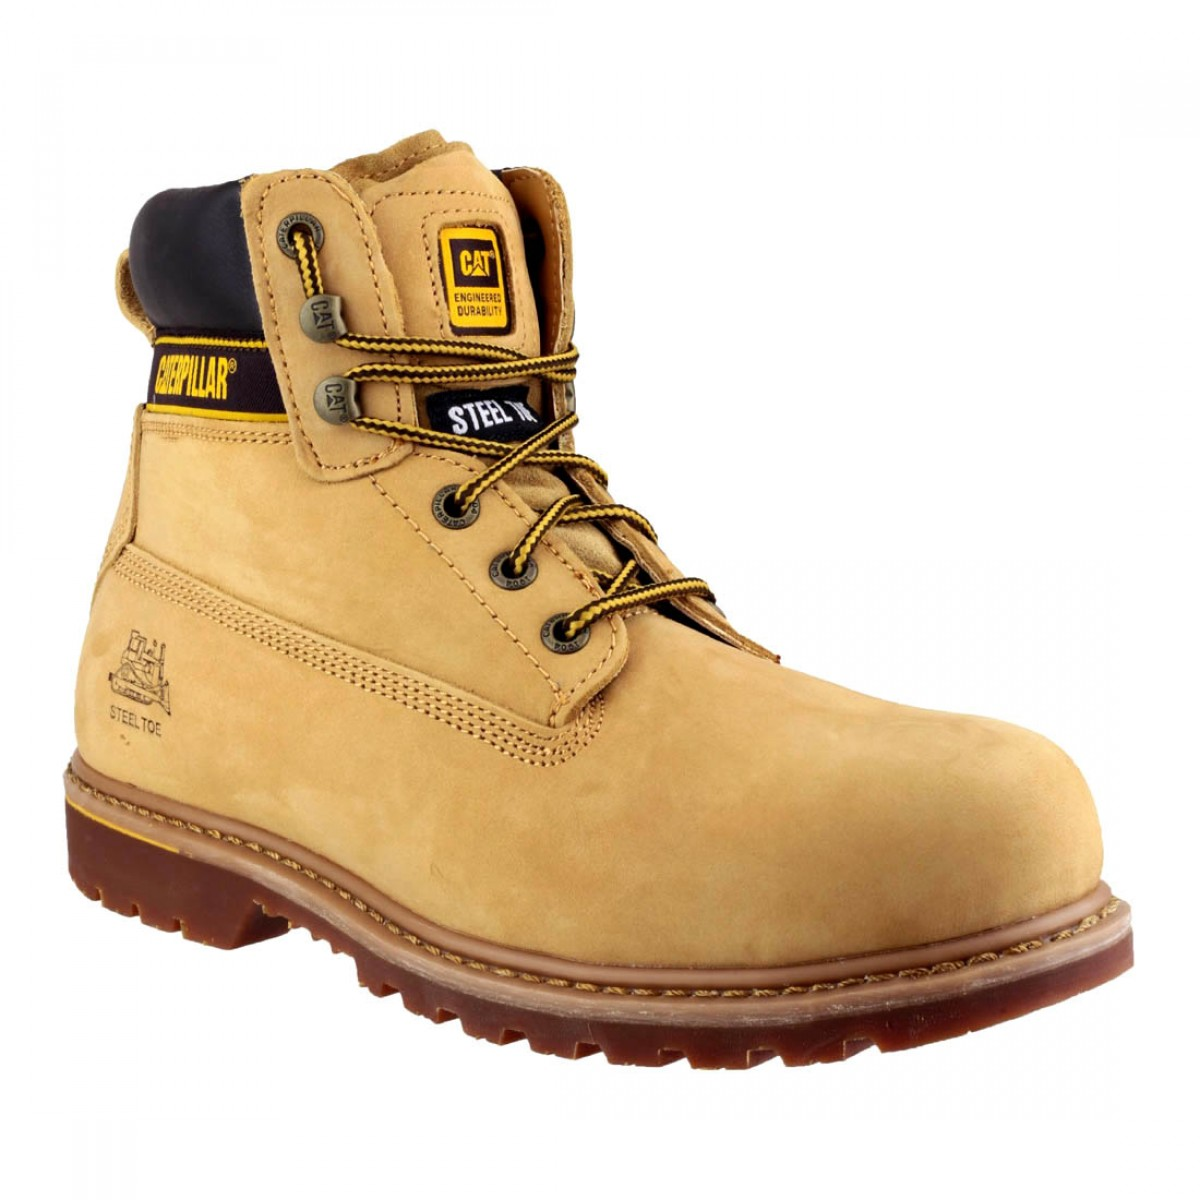 64b0bd167c2 Caterpillar Holton S3 Honey Safety Boots - Charnwood Safety Footwear